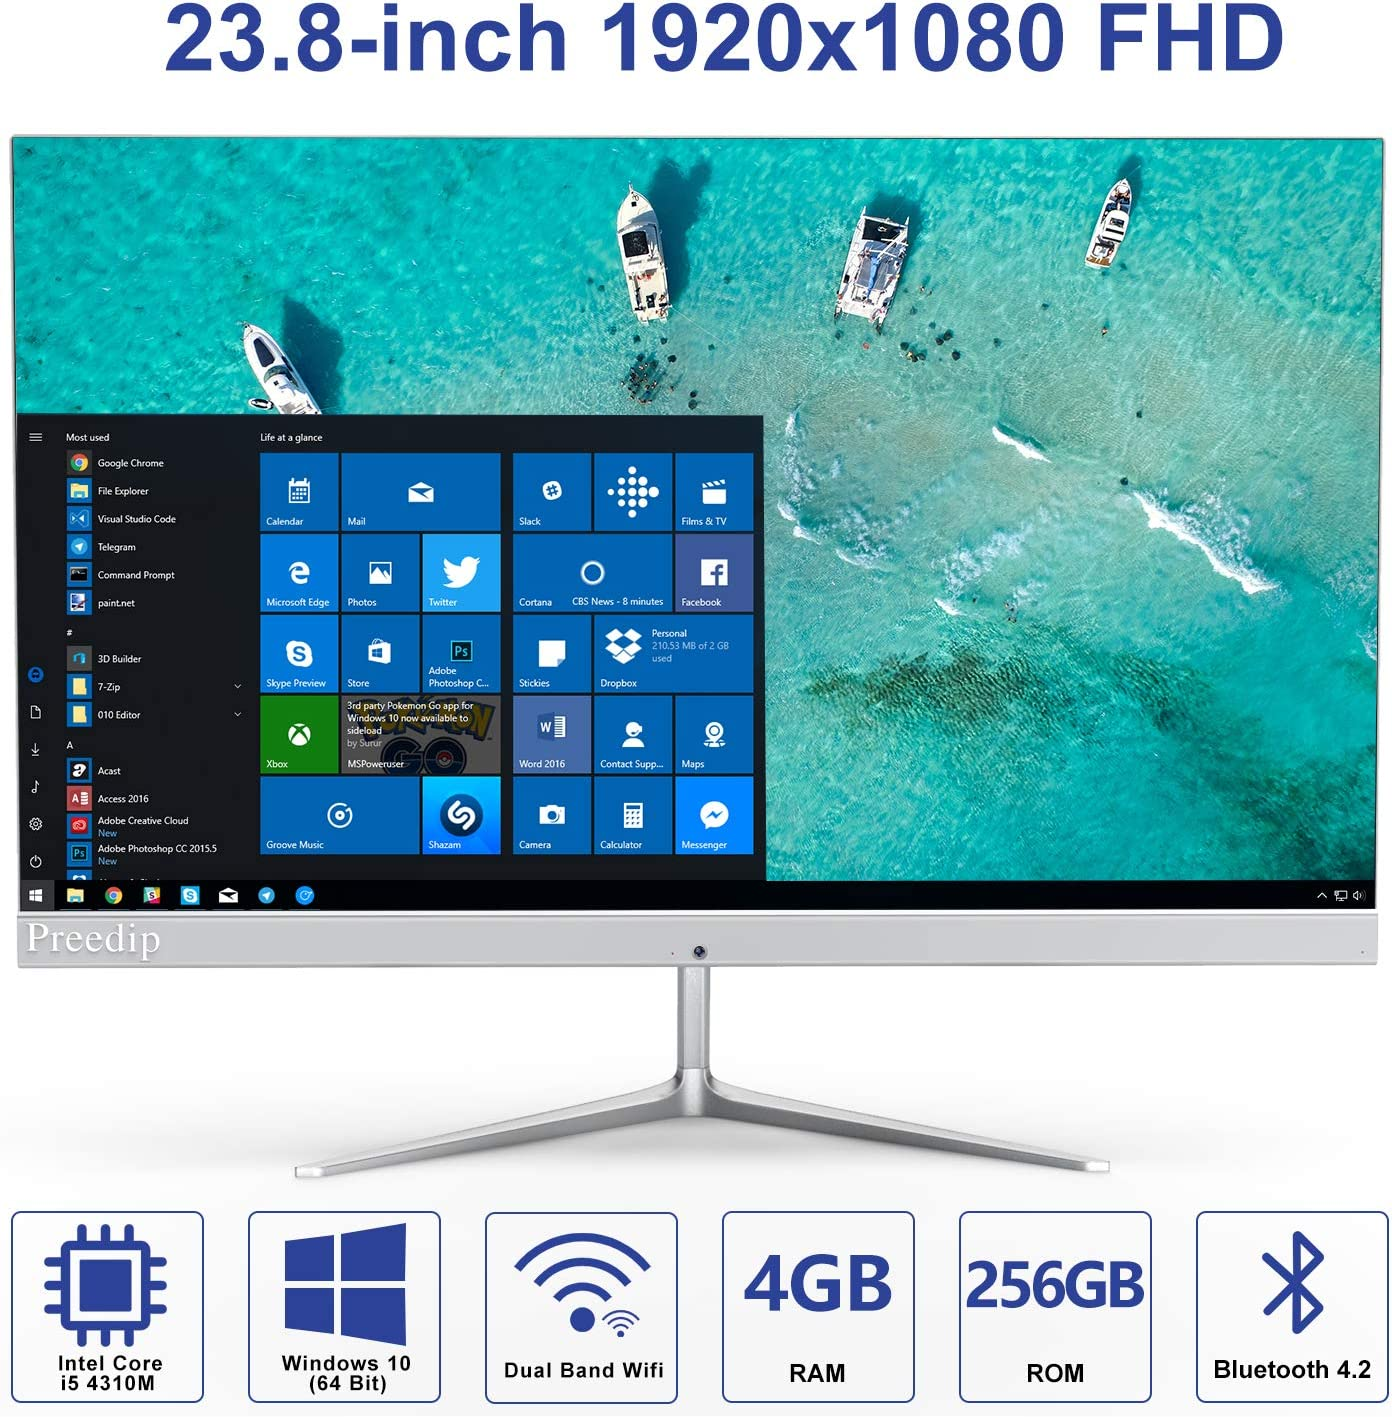 Preedip 23.8-inch 1920x1080 FHD All in One Desktop Computer with Intel Core i5-4310M(Up to 3.4GHz)& Windows 10,4GB DDR3 256GB ROM AIO PC Support 2.4G/5.0G Dual Band WiFi and Bluetooth 4.2